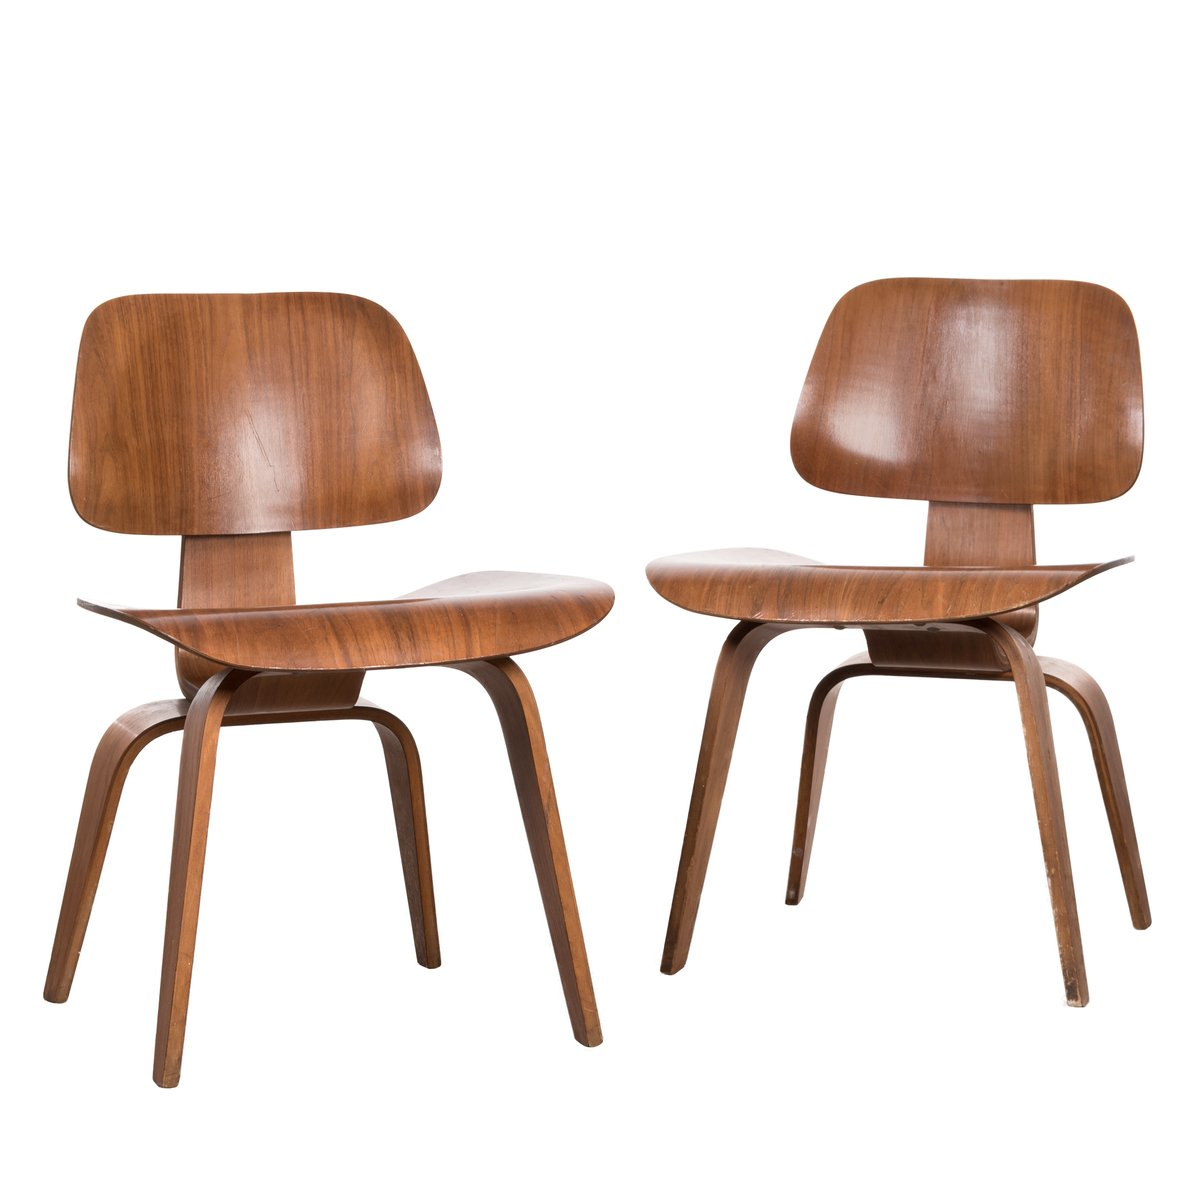 Ordinaire DCW Walnut Plywood Dining Chair By Charles U0026 Ray Eames For Herman Miller,  1952